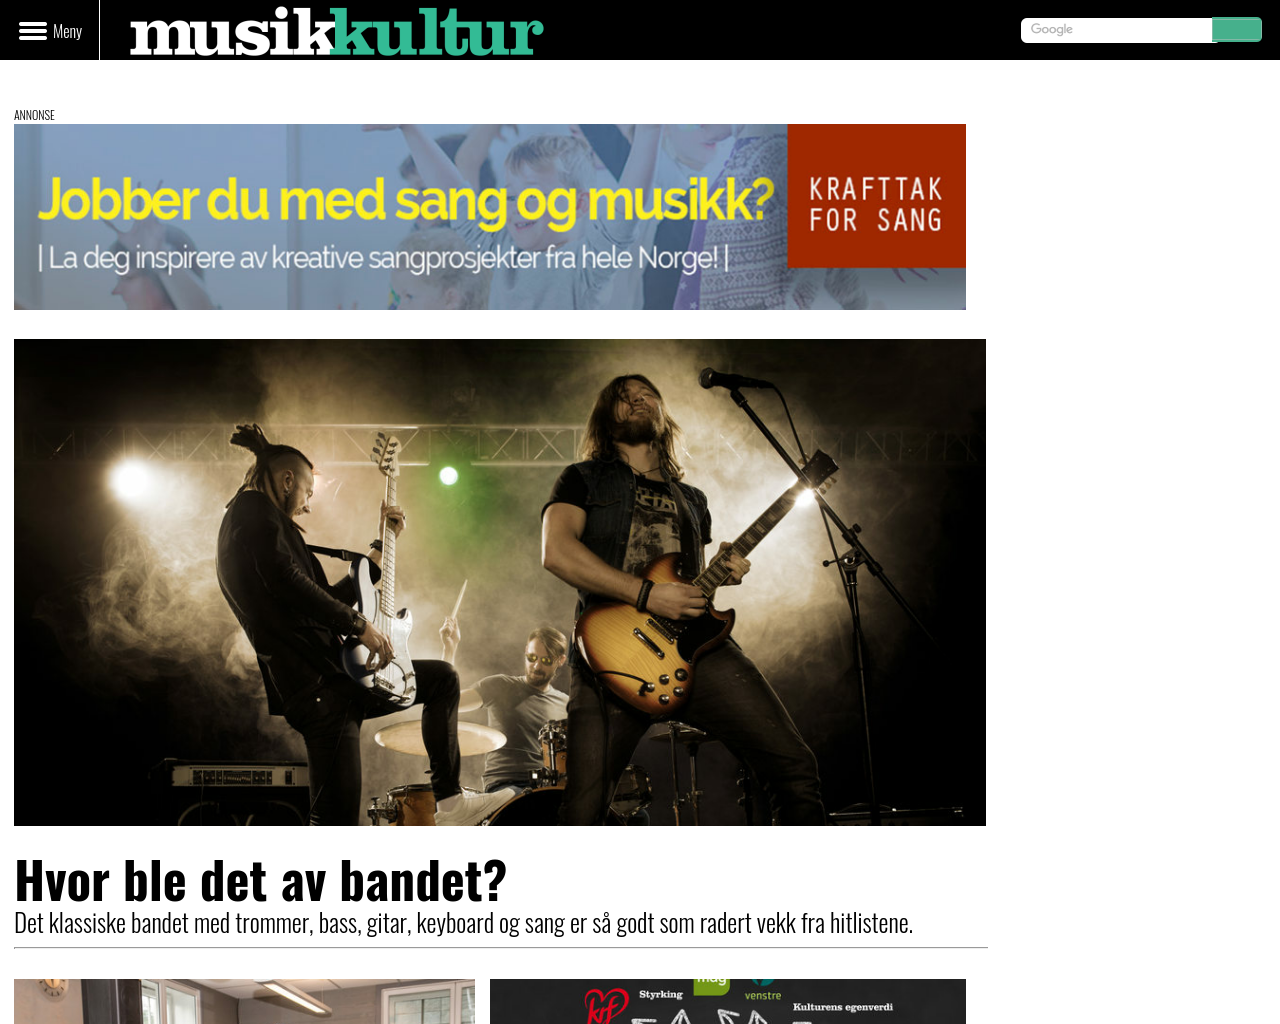 Musikkultur.no-Advertising-Reviews-Pricing